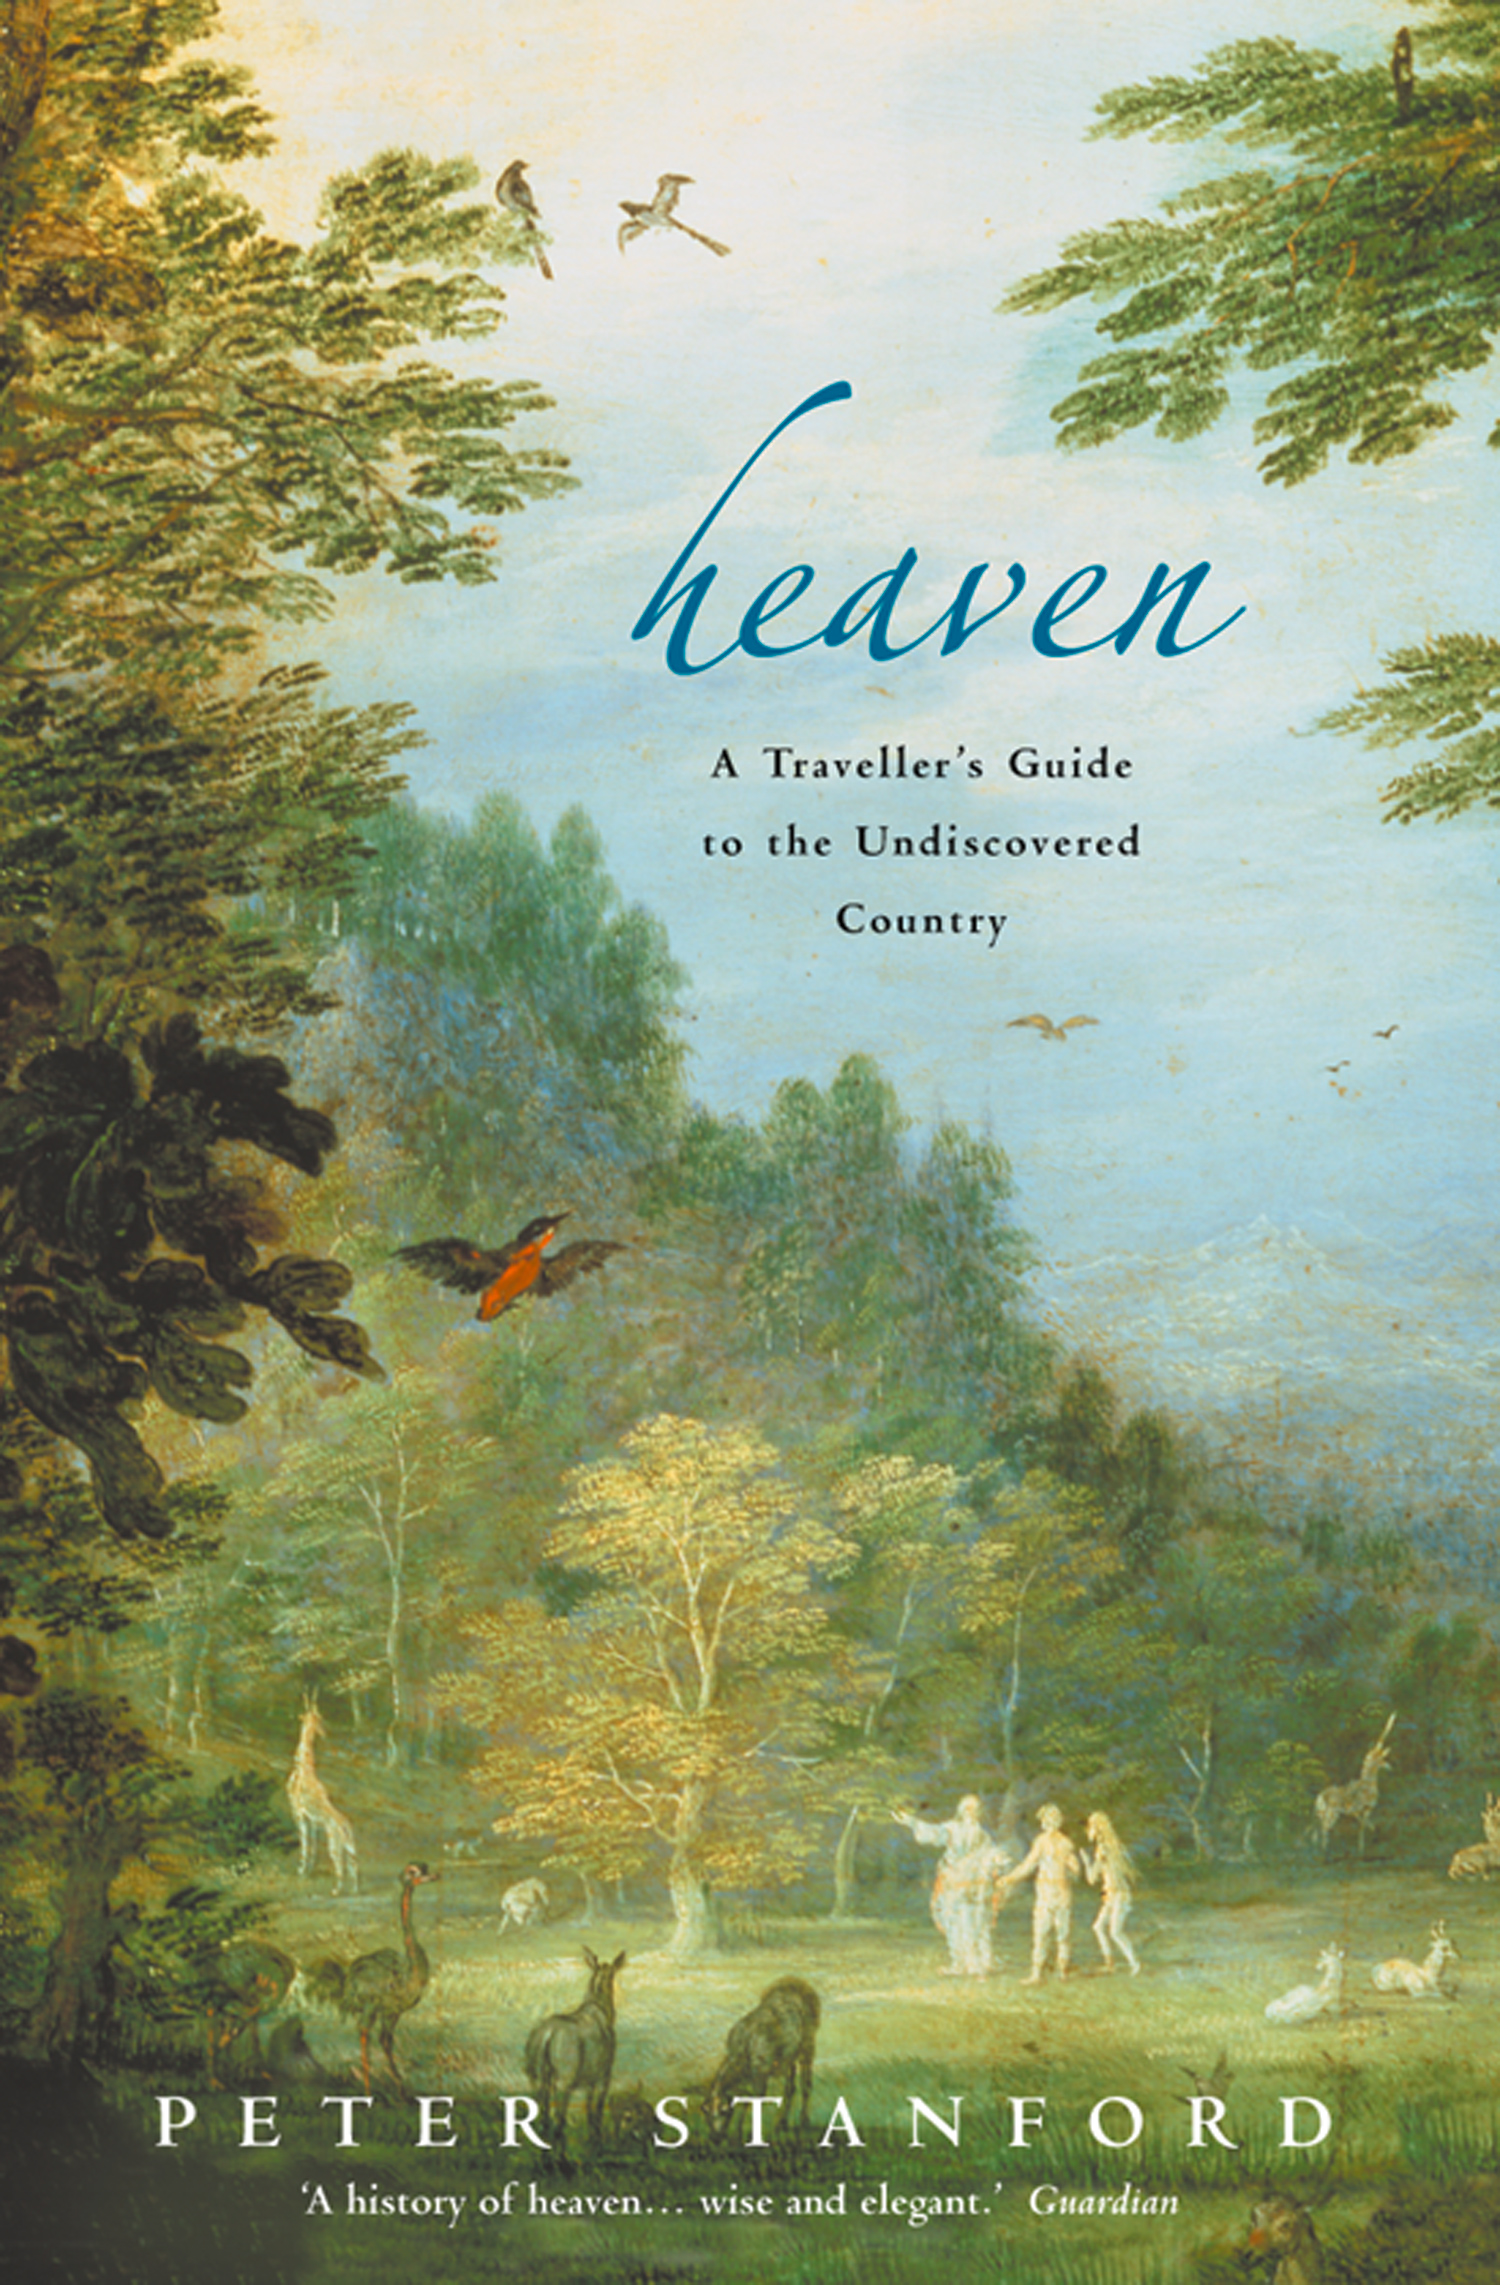 Heaven: A Traveller's Guide to the Undiscovered Country (Text Only)